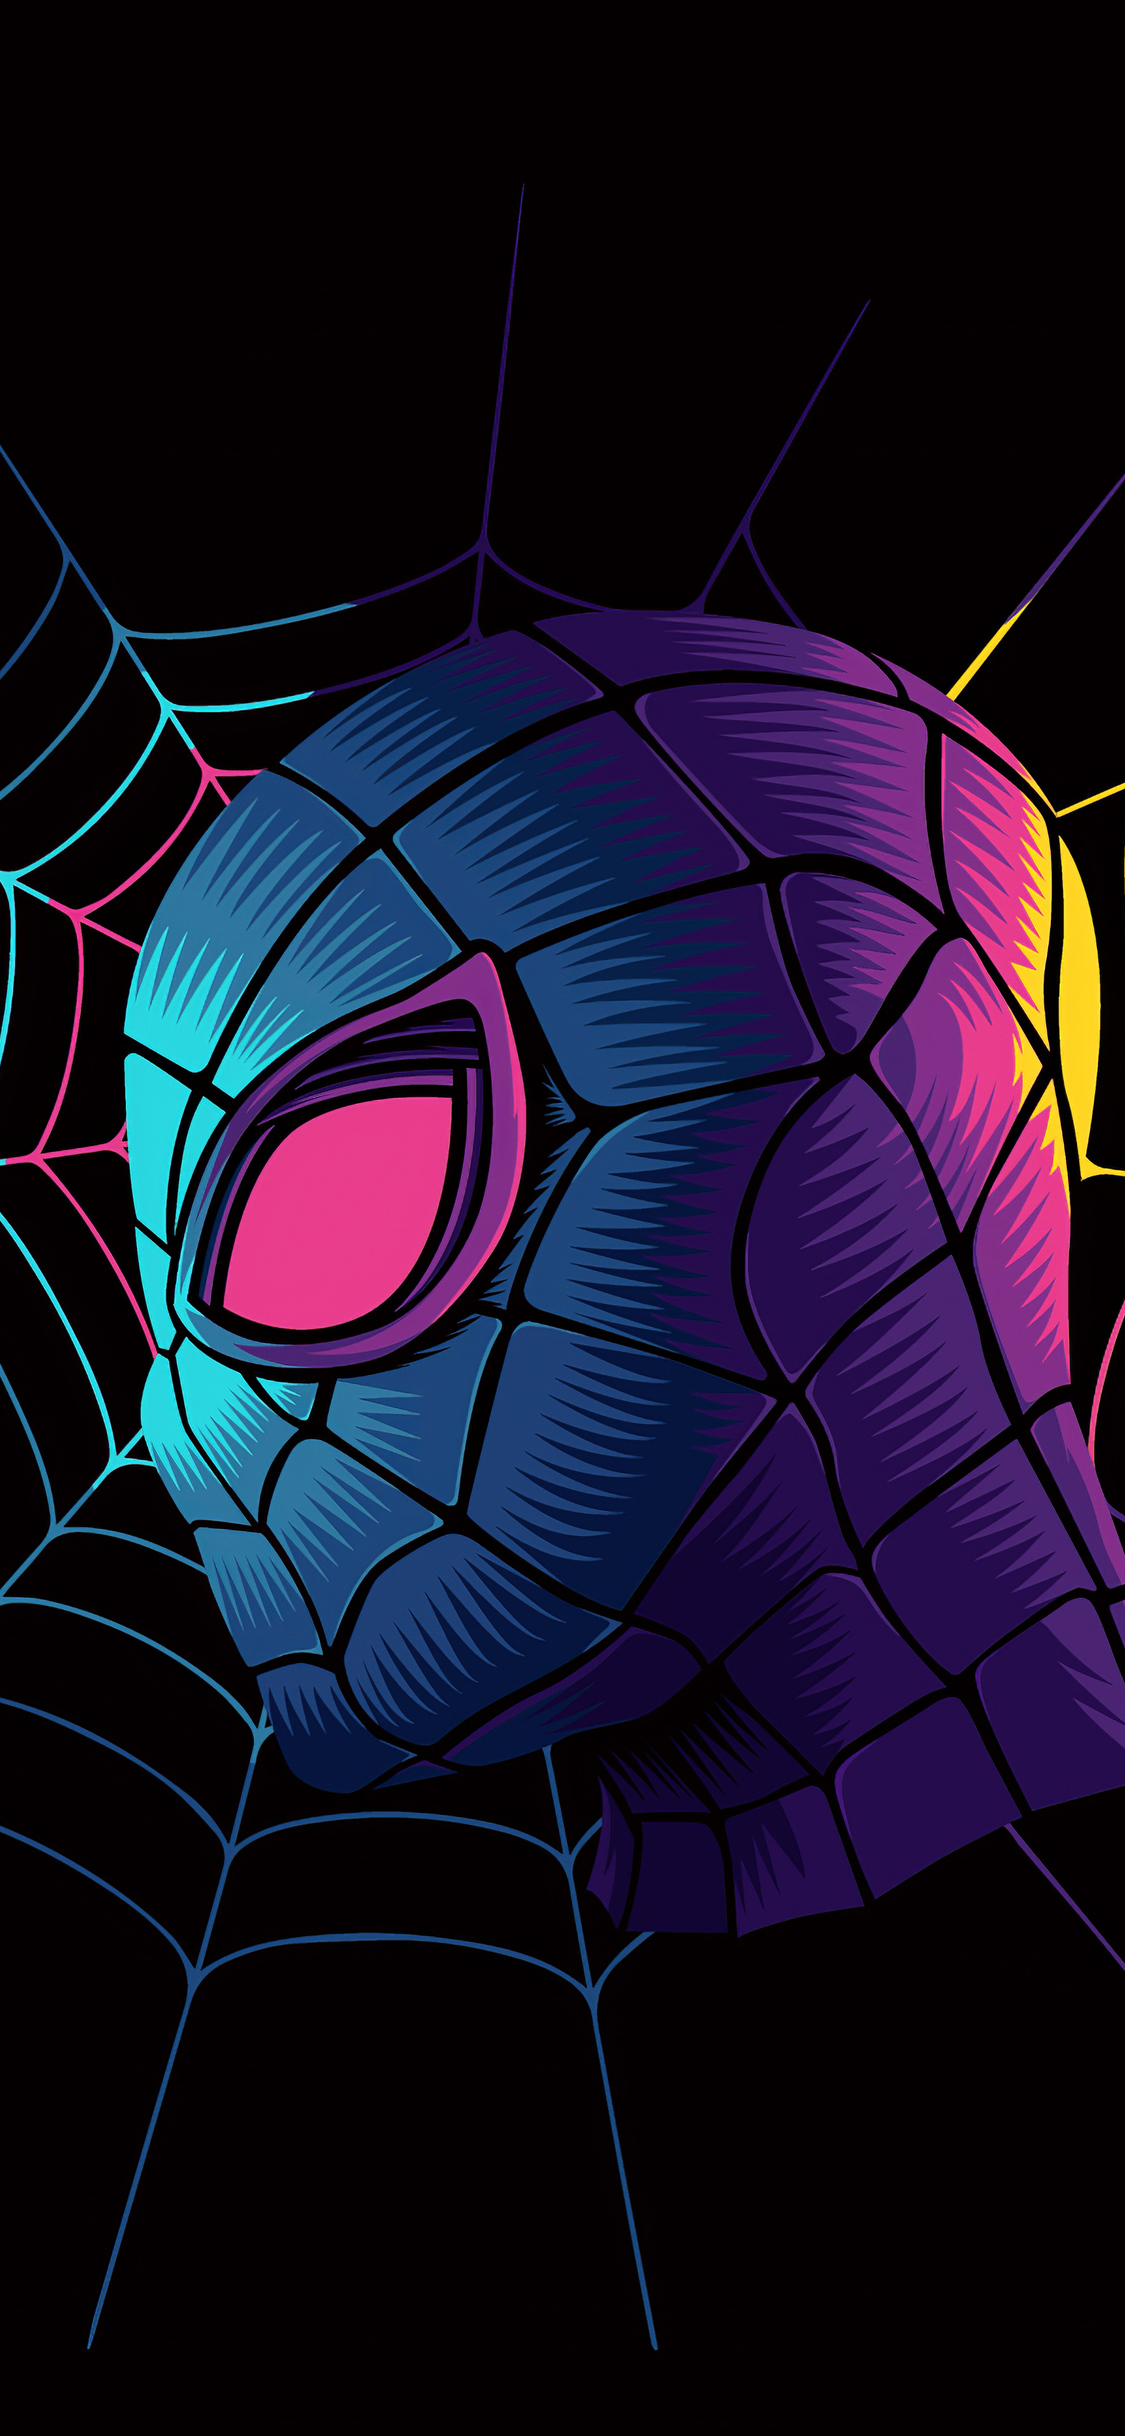 90 Spiderman iPhone Wallpapers Download HD Wallpaper of Spider man 1125x2436